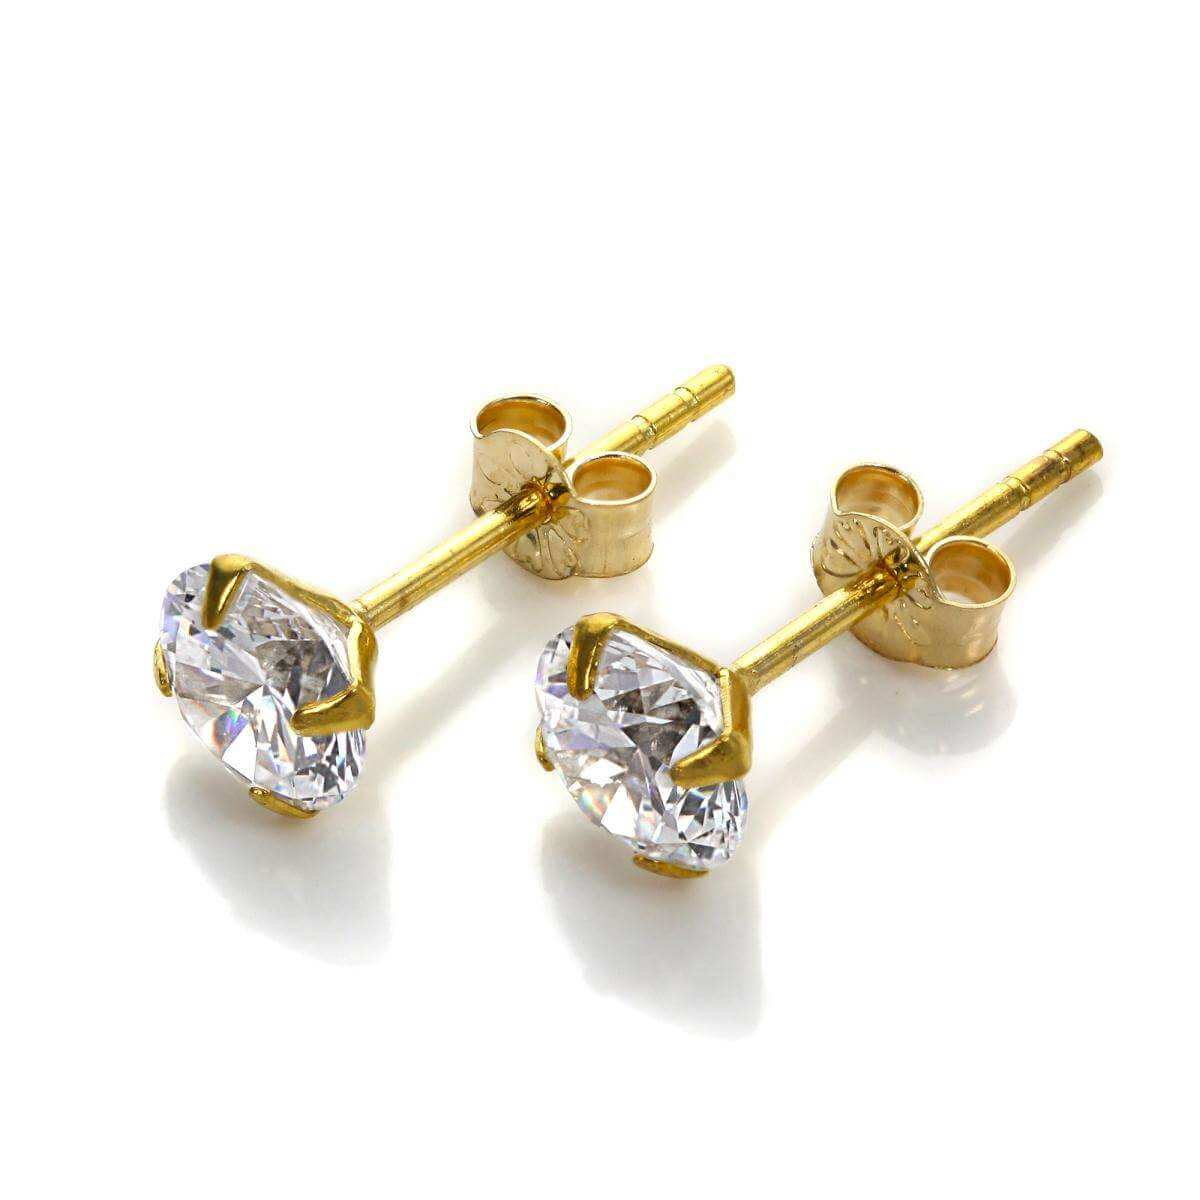 9ct Yellow Gold Clear CZ 5mm Stud Earrings